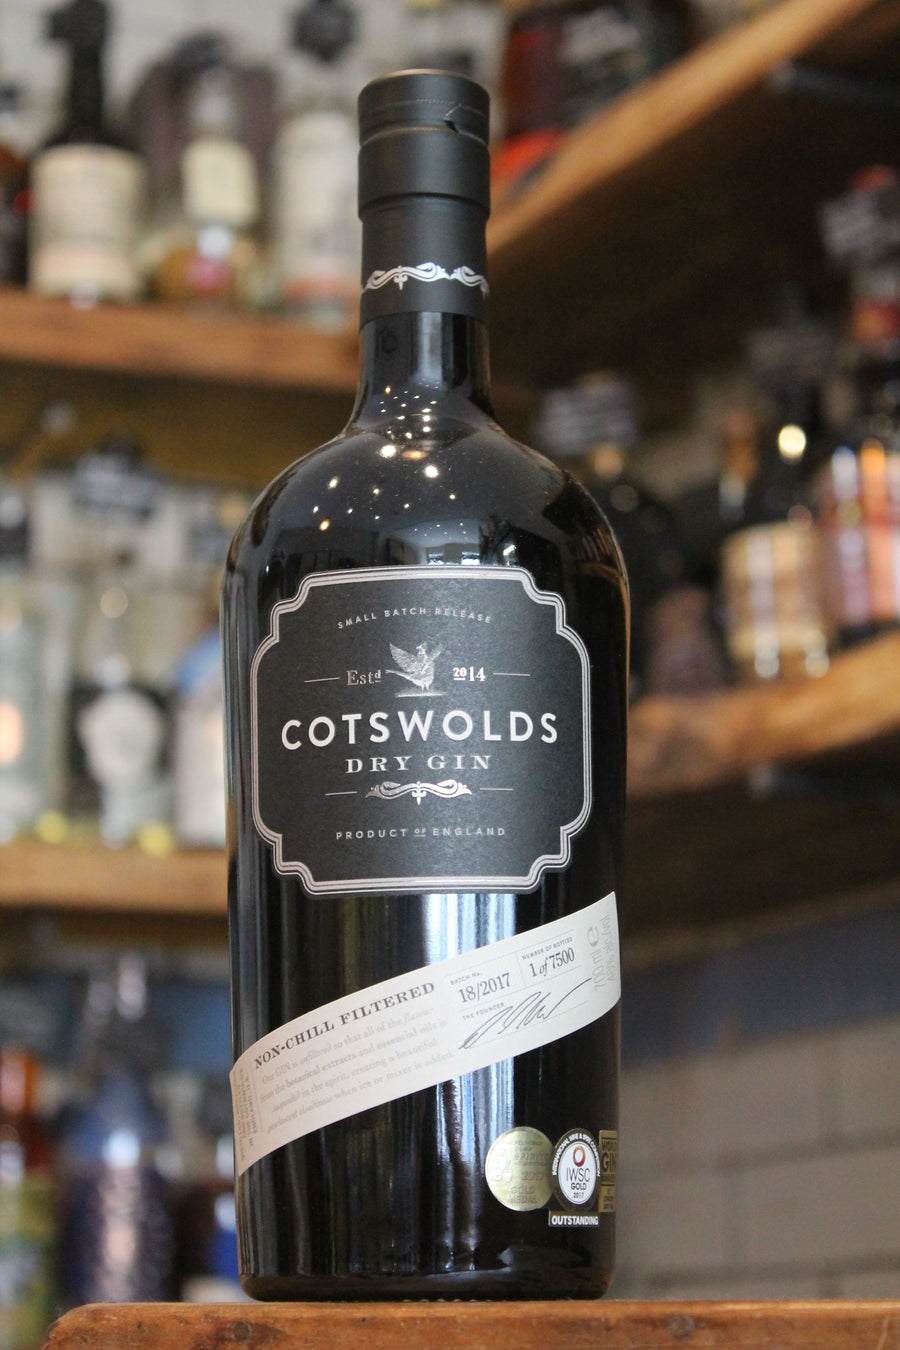 Cotswold Dry Gin